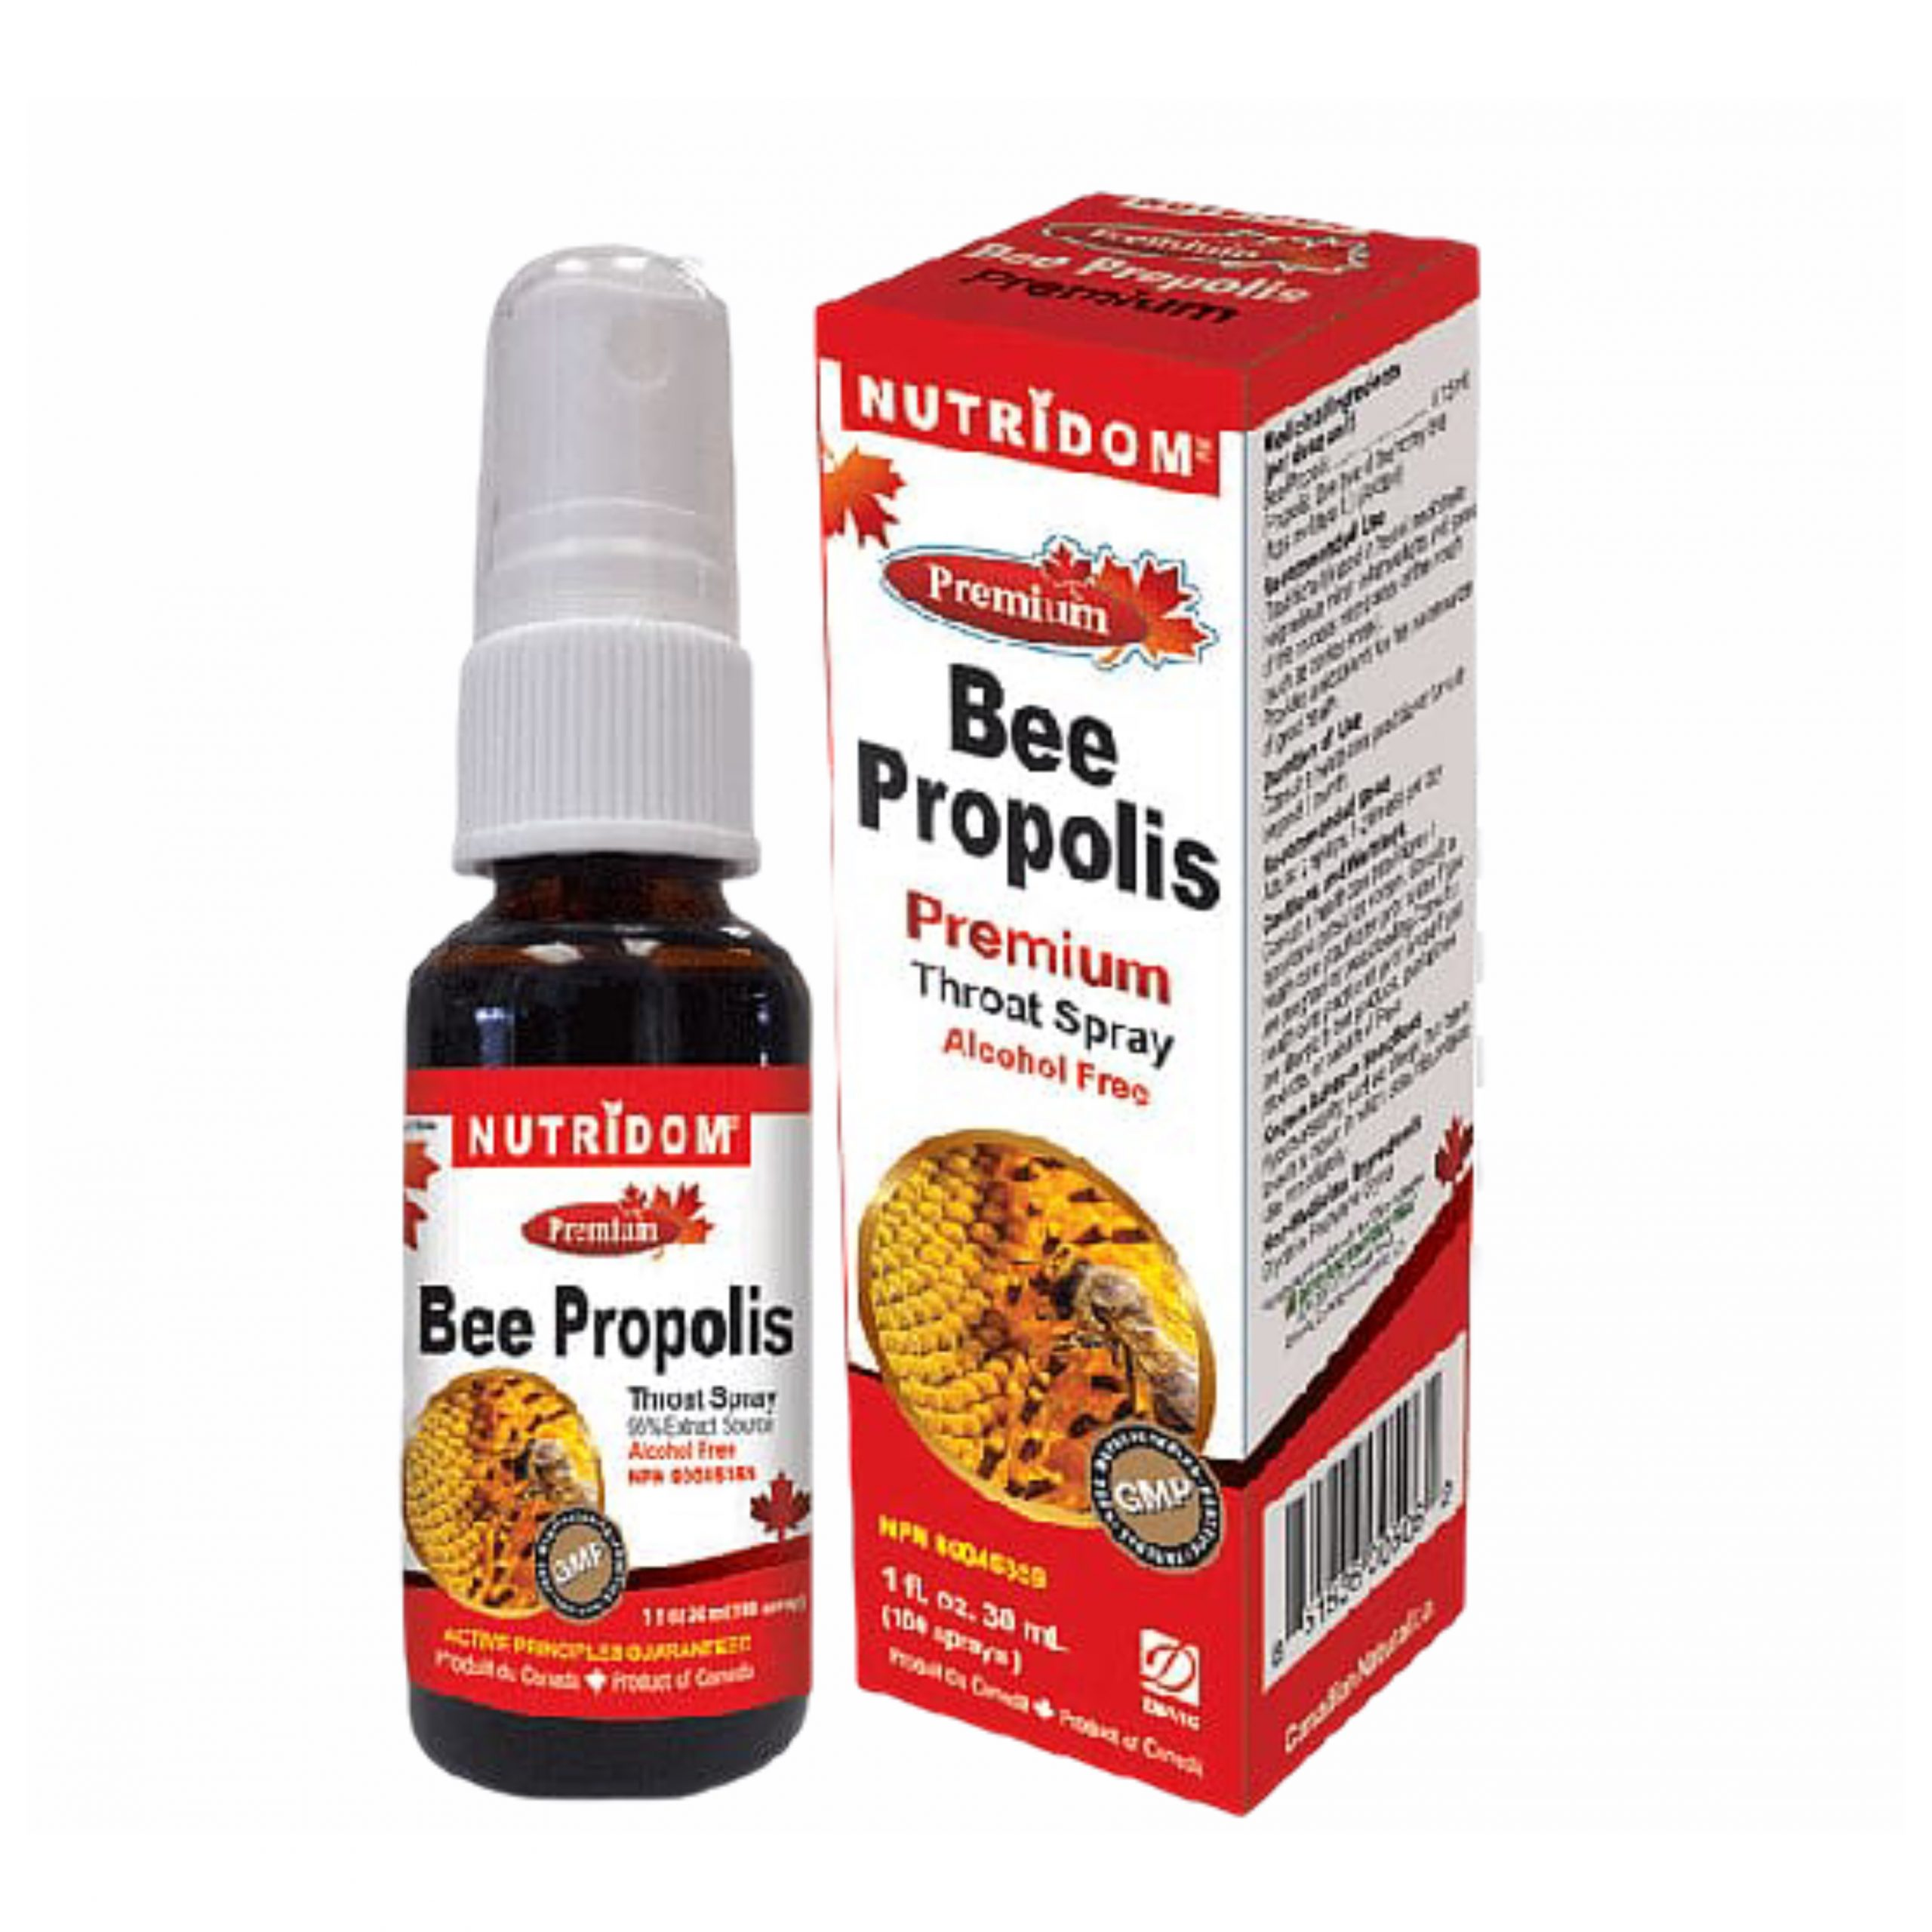 Xit-keo-ong-Bee-Propolis-Nutridom-Canada-30ml-1